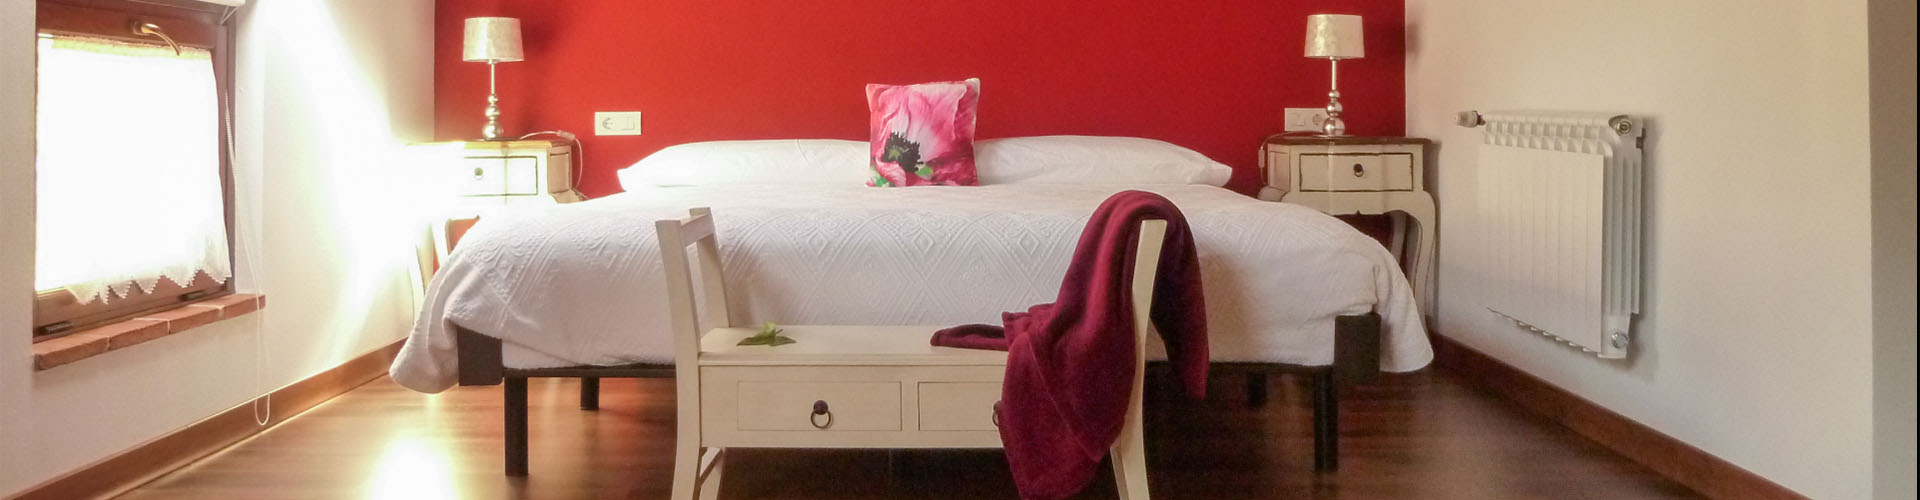 Jascal-Coutry-Cottages-Bedroom